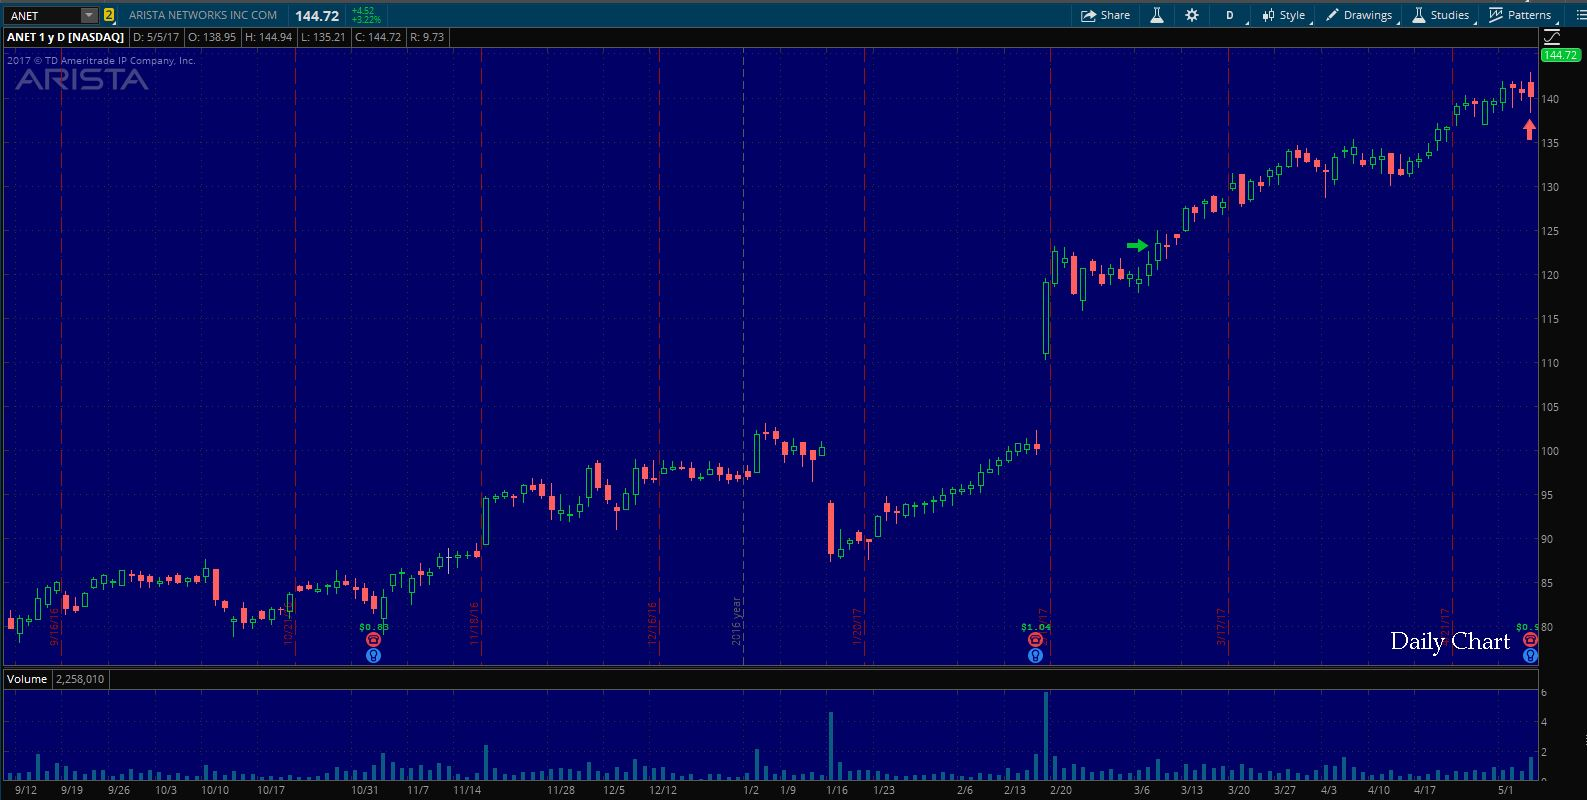 $ANET Exit on the Daily Chart